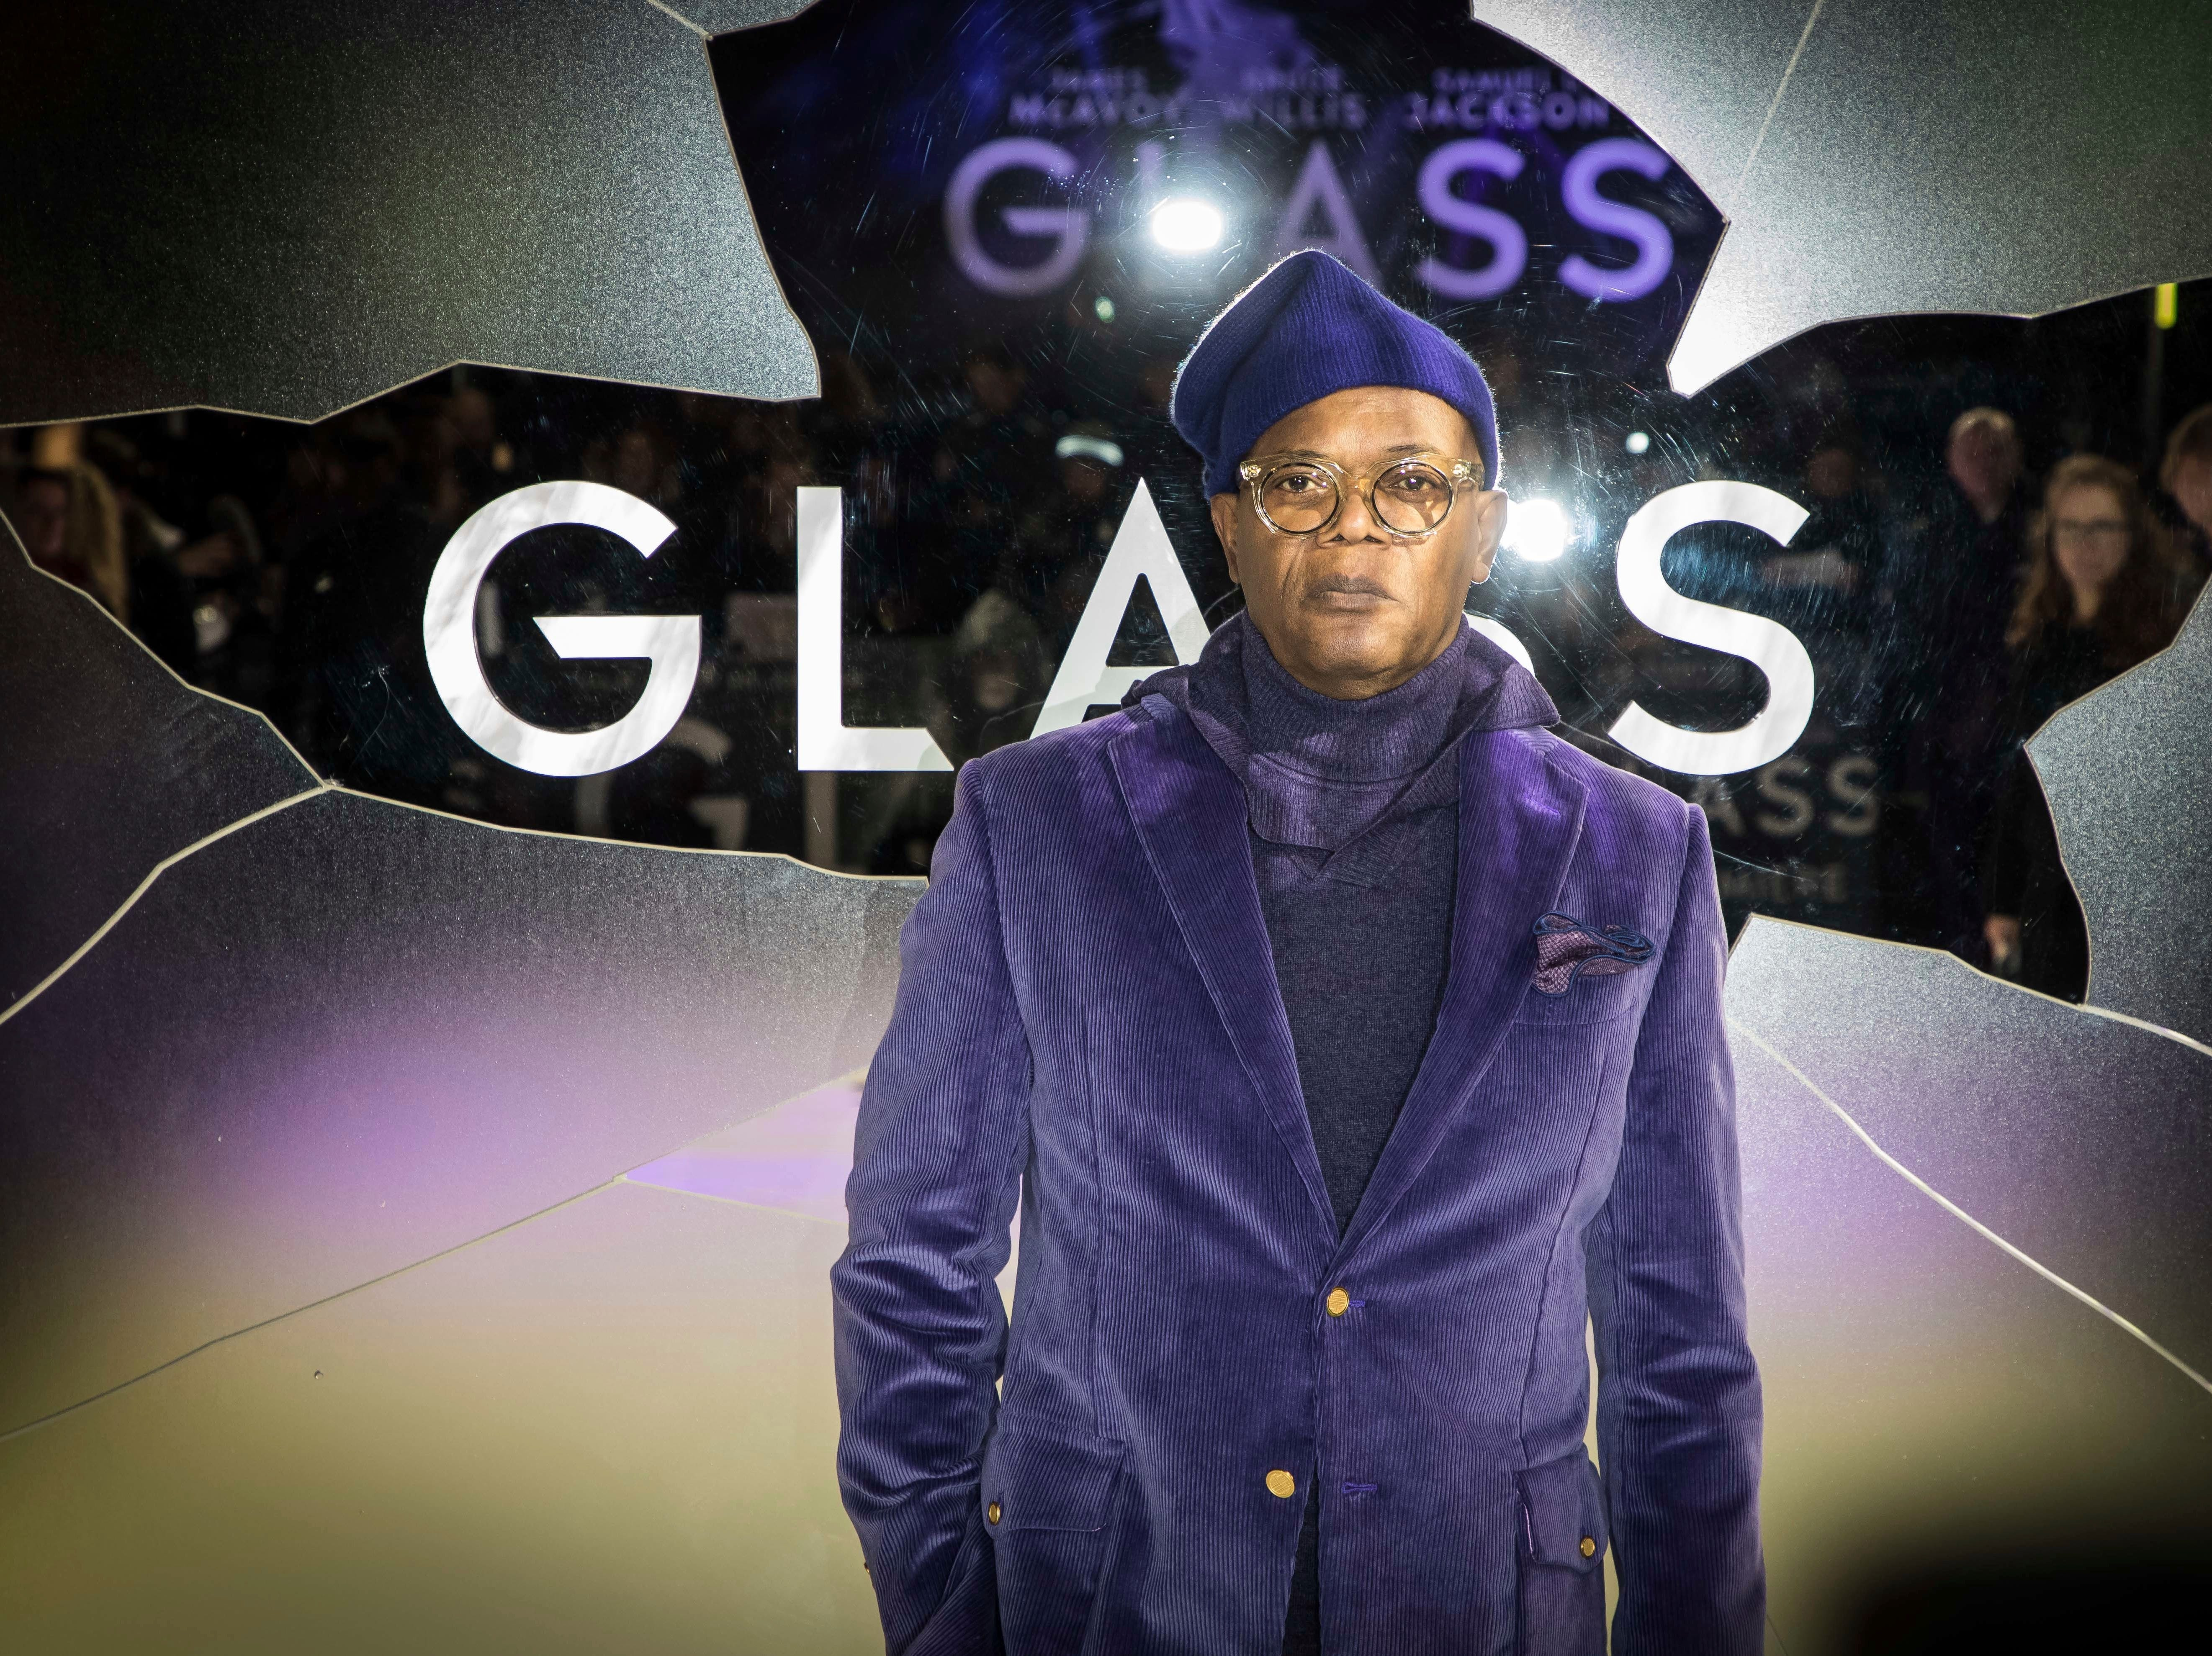 """Actor Samuel L. Jackson poses for photographers upon arrival at the premiere of the film """"Glass"""" in London on Wednesday, Jan. 9, 2019."""